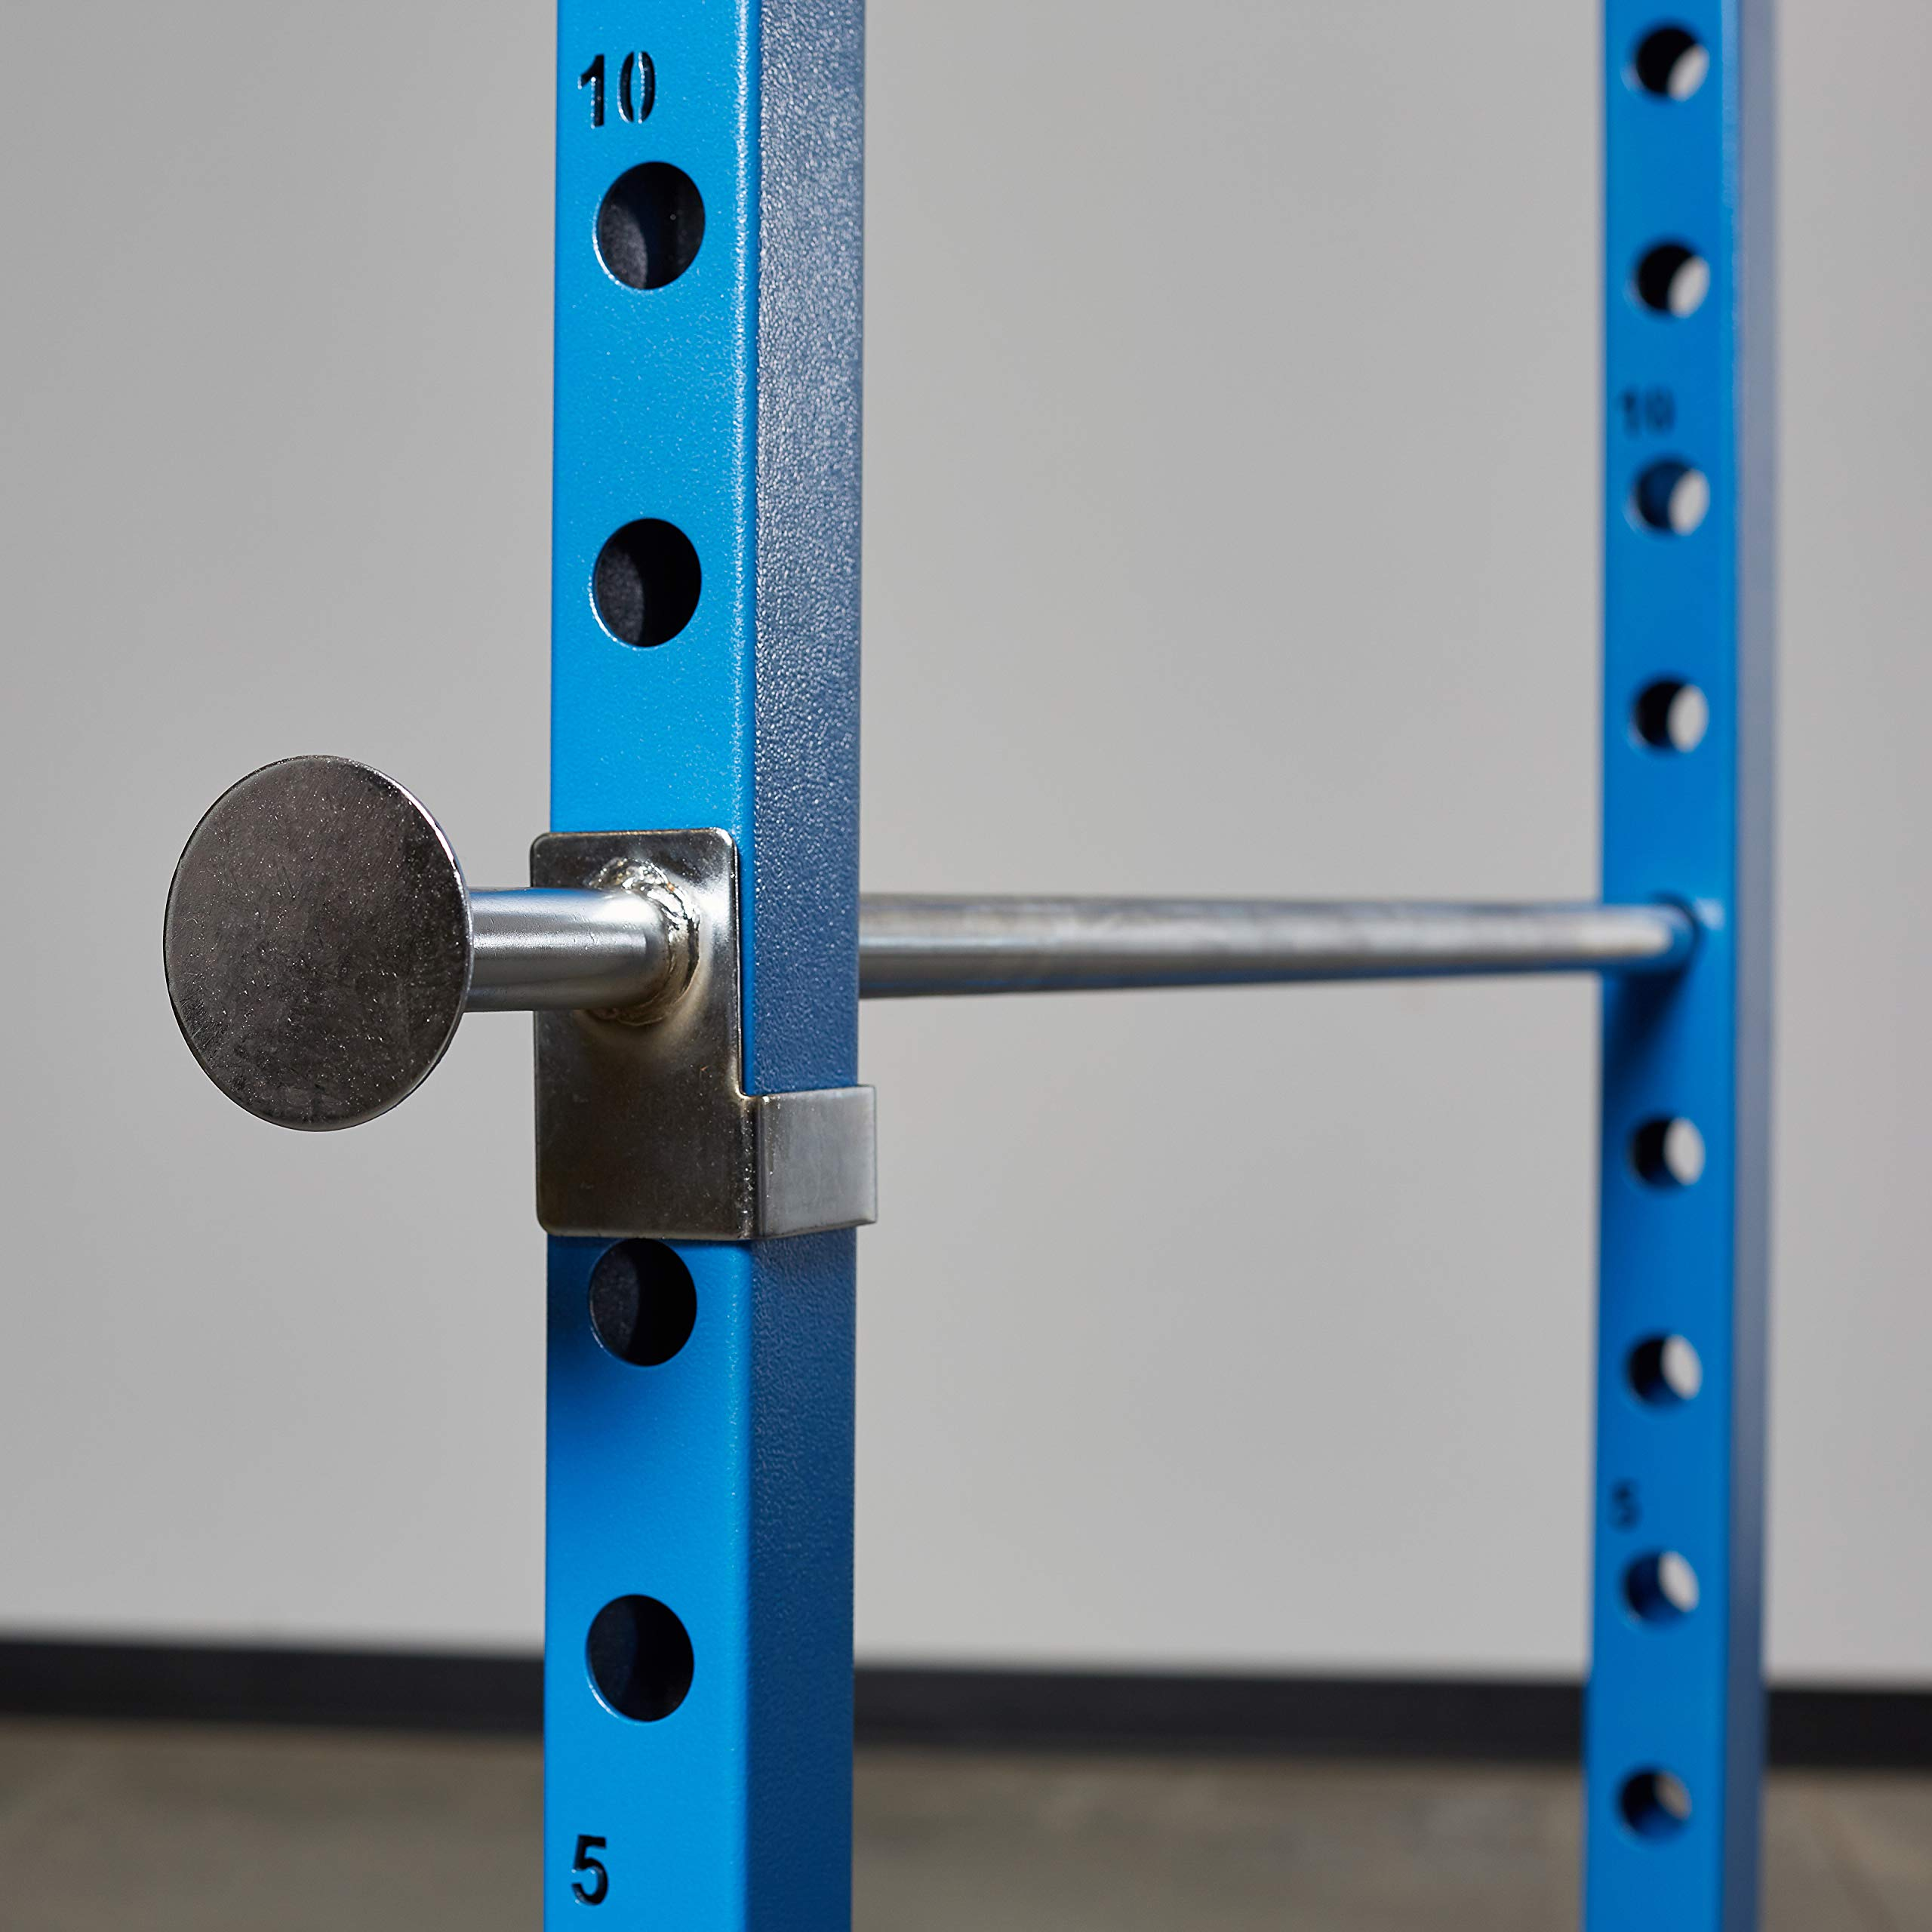 Rep PR-1100 Power Rack - 1,000 lbs Rated Lifting Cage for Weight Training (Blue Power Rack, No Bench) by Rep Fitness (Image #3)